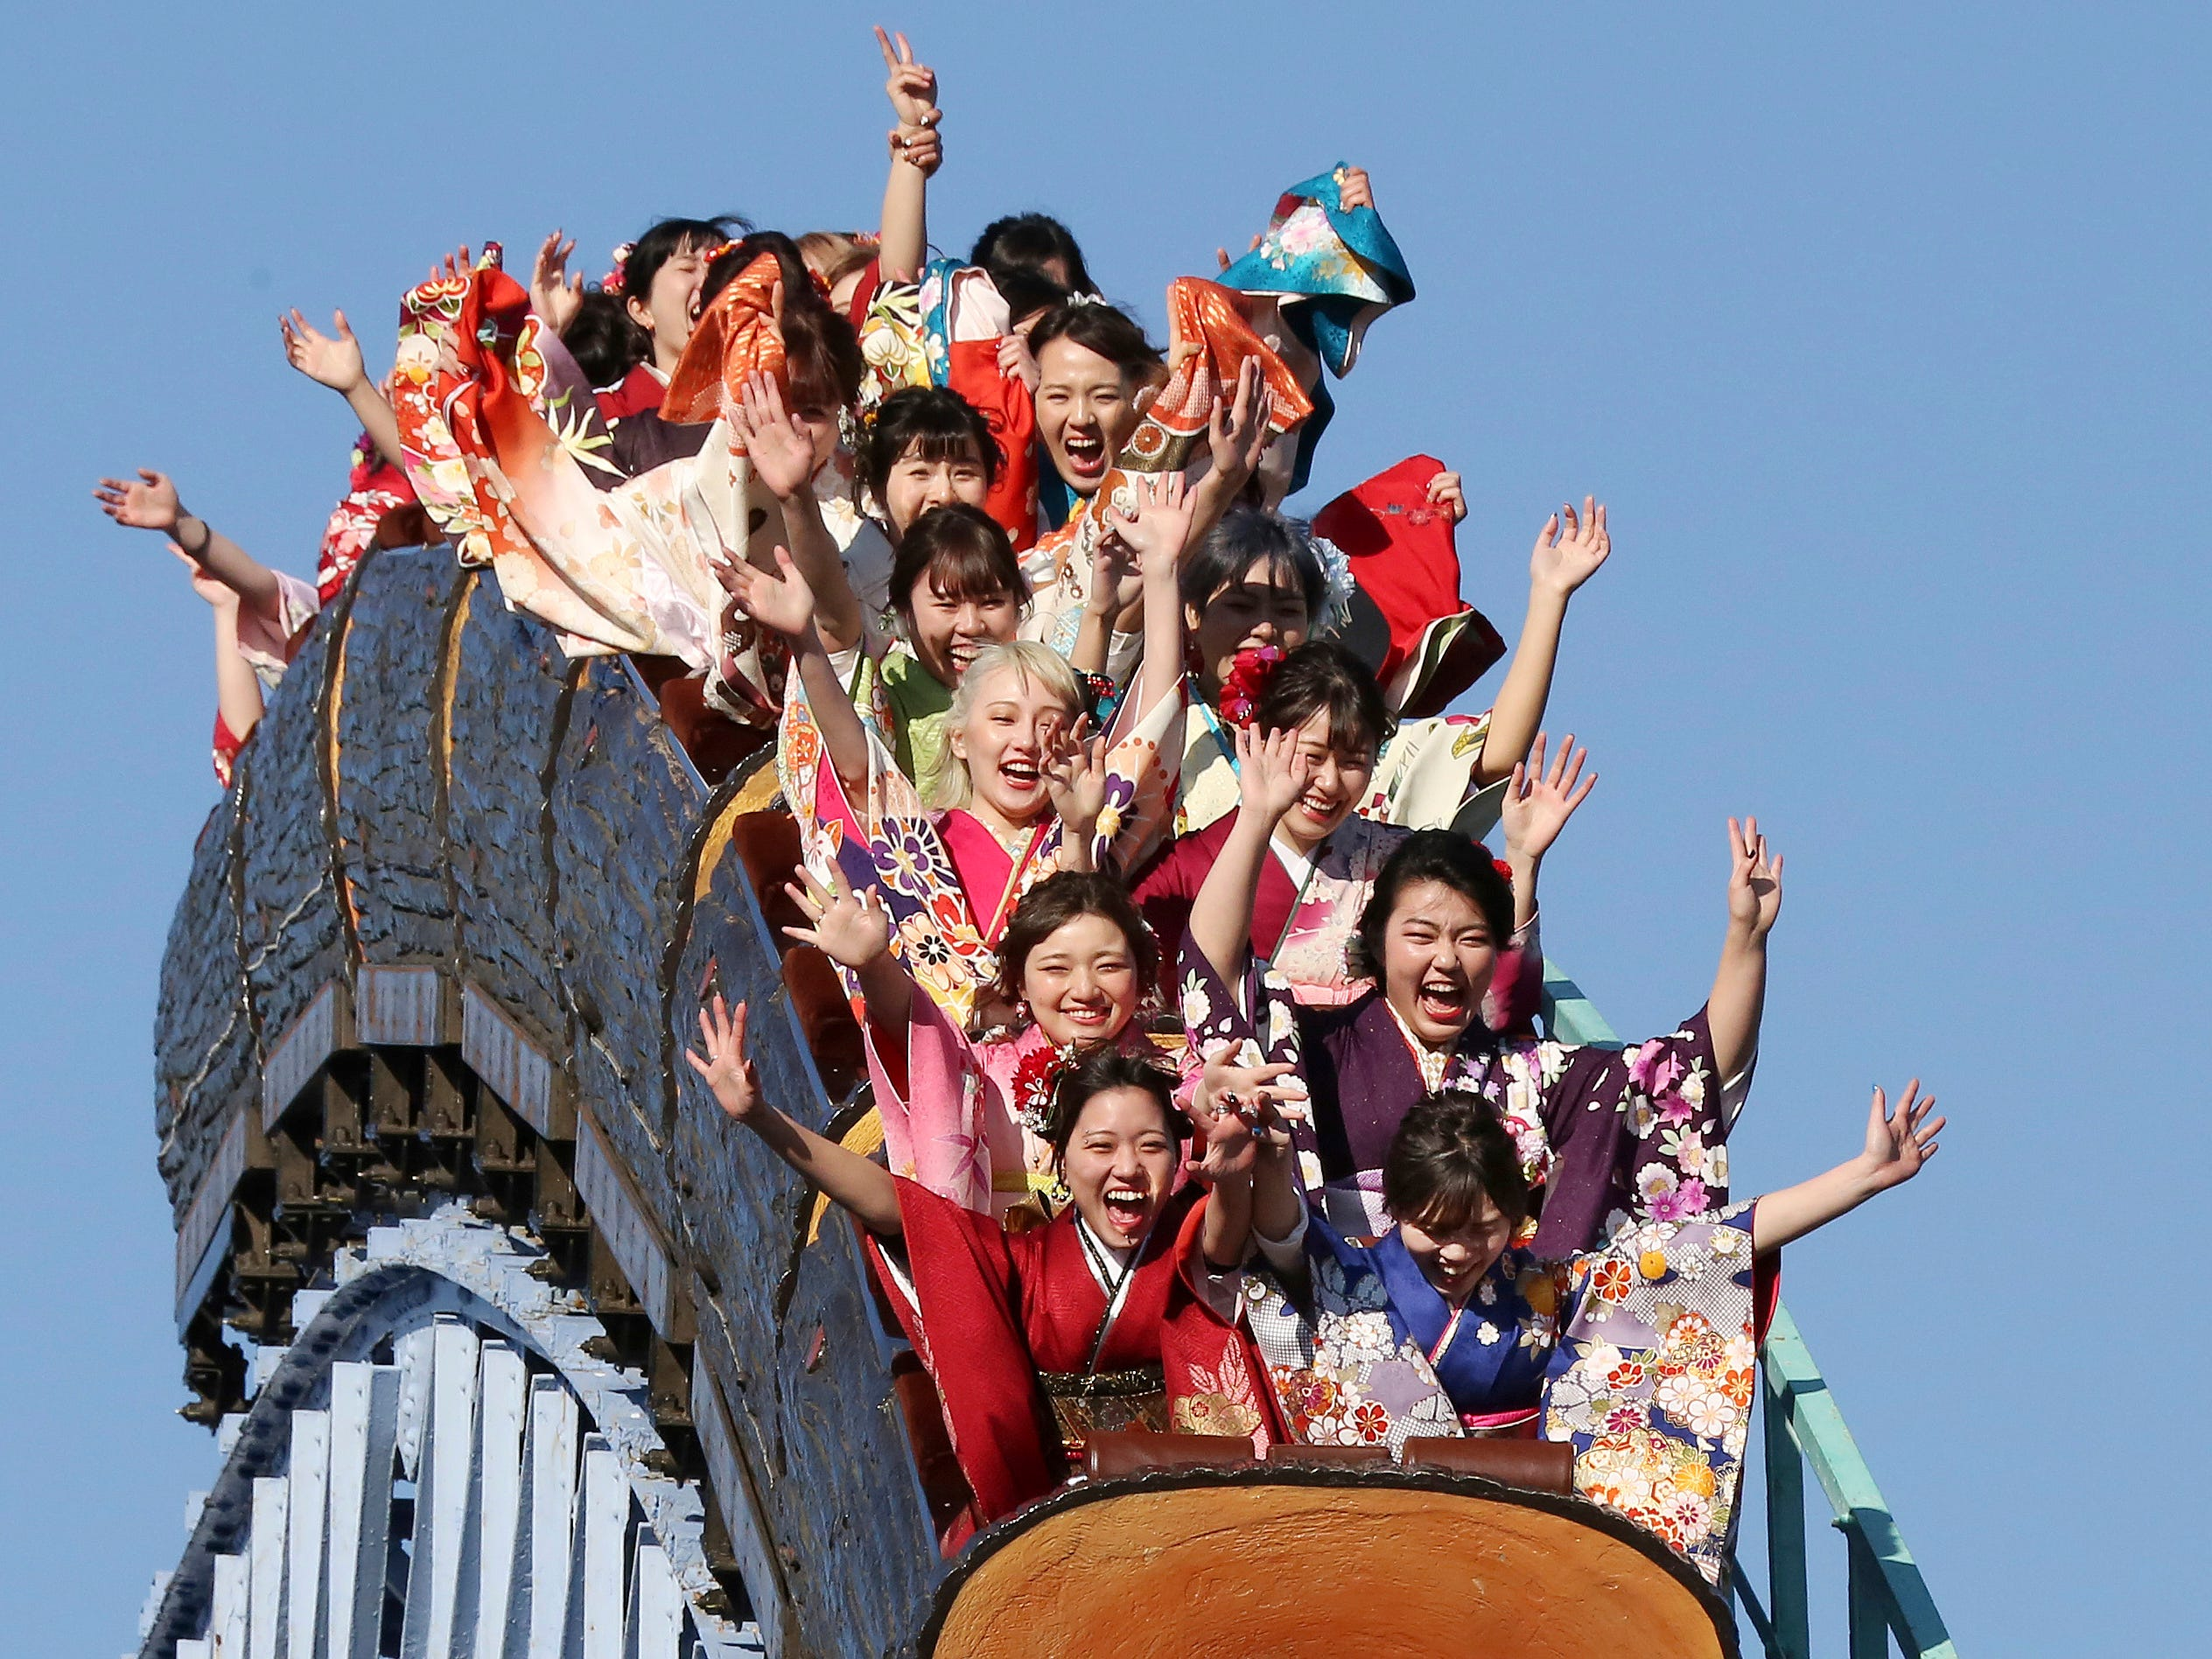 Kimono-clad women, who celebrate turning 20-years-old, react as they ride a roller coaster following a ceremony at Toshimaen amusement park on Coming of Age Day, a national holiday, in Tokyo, Monday, Jan. 14, 2019.